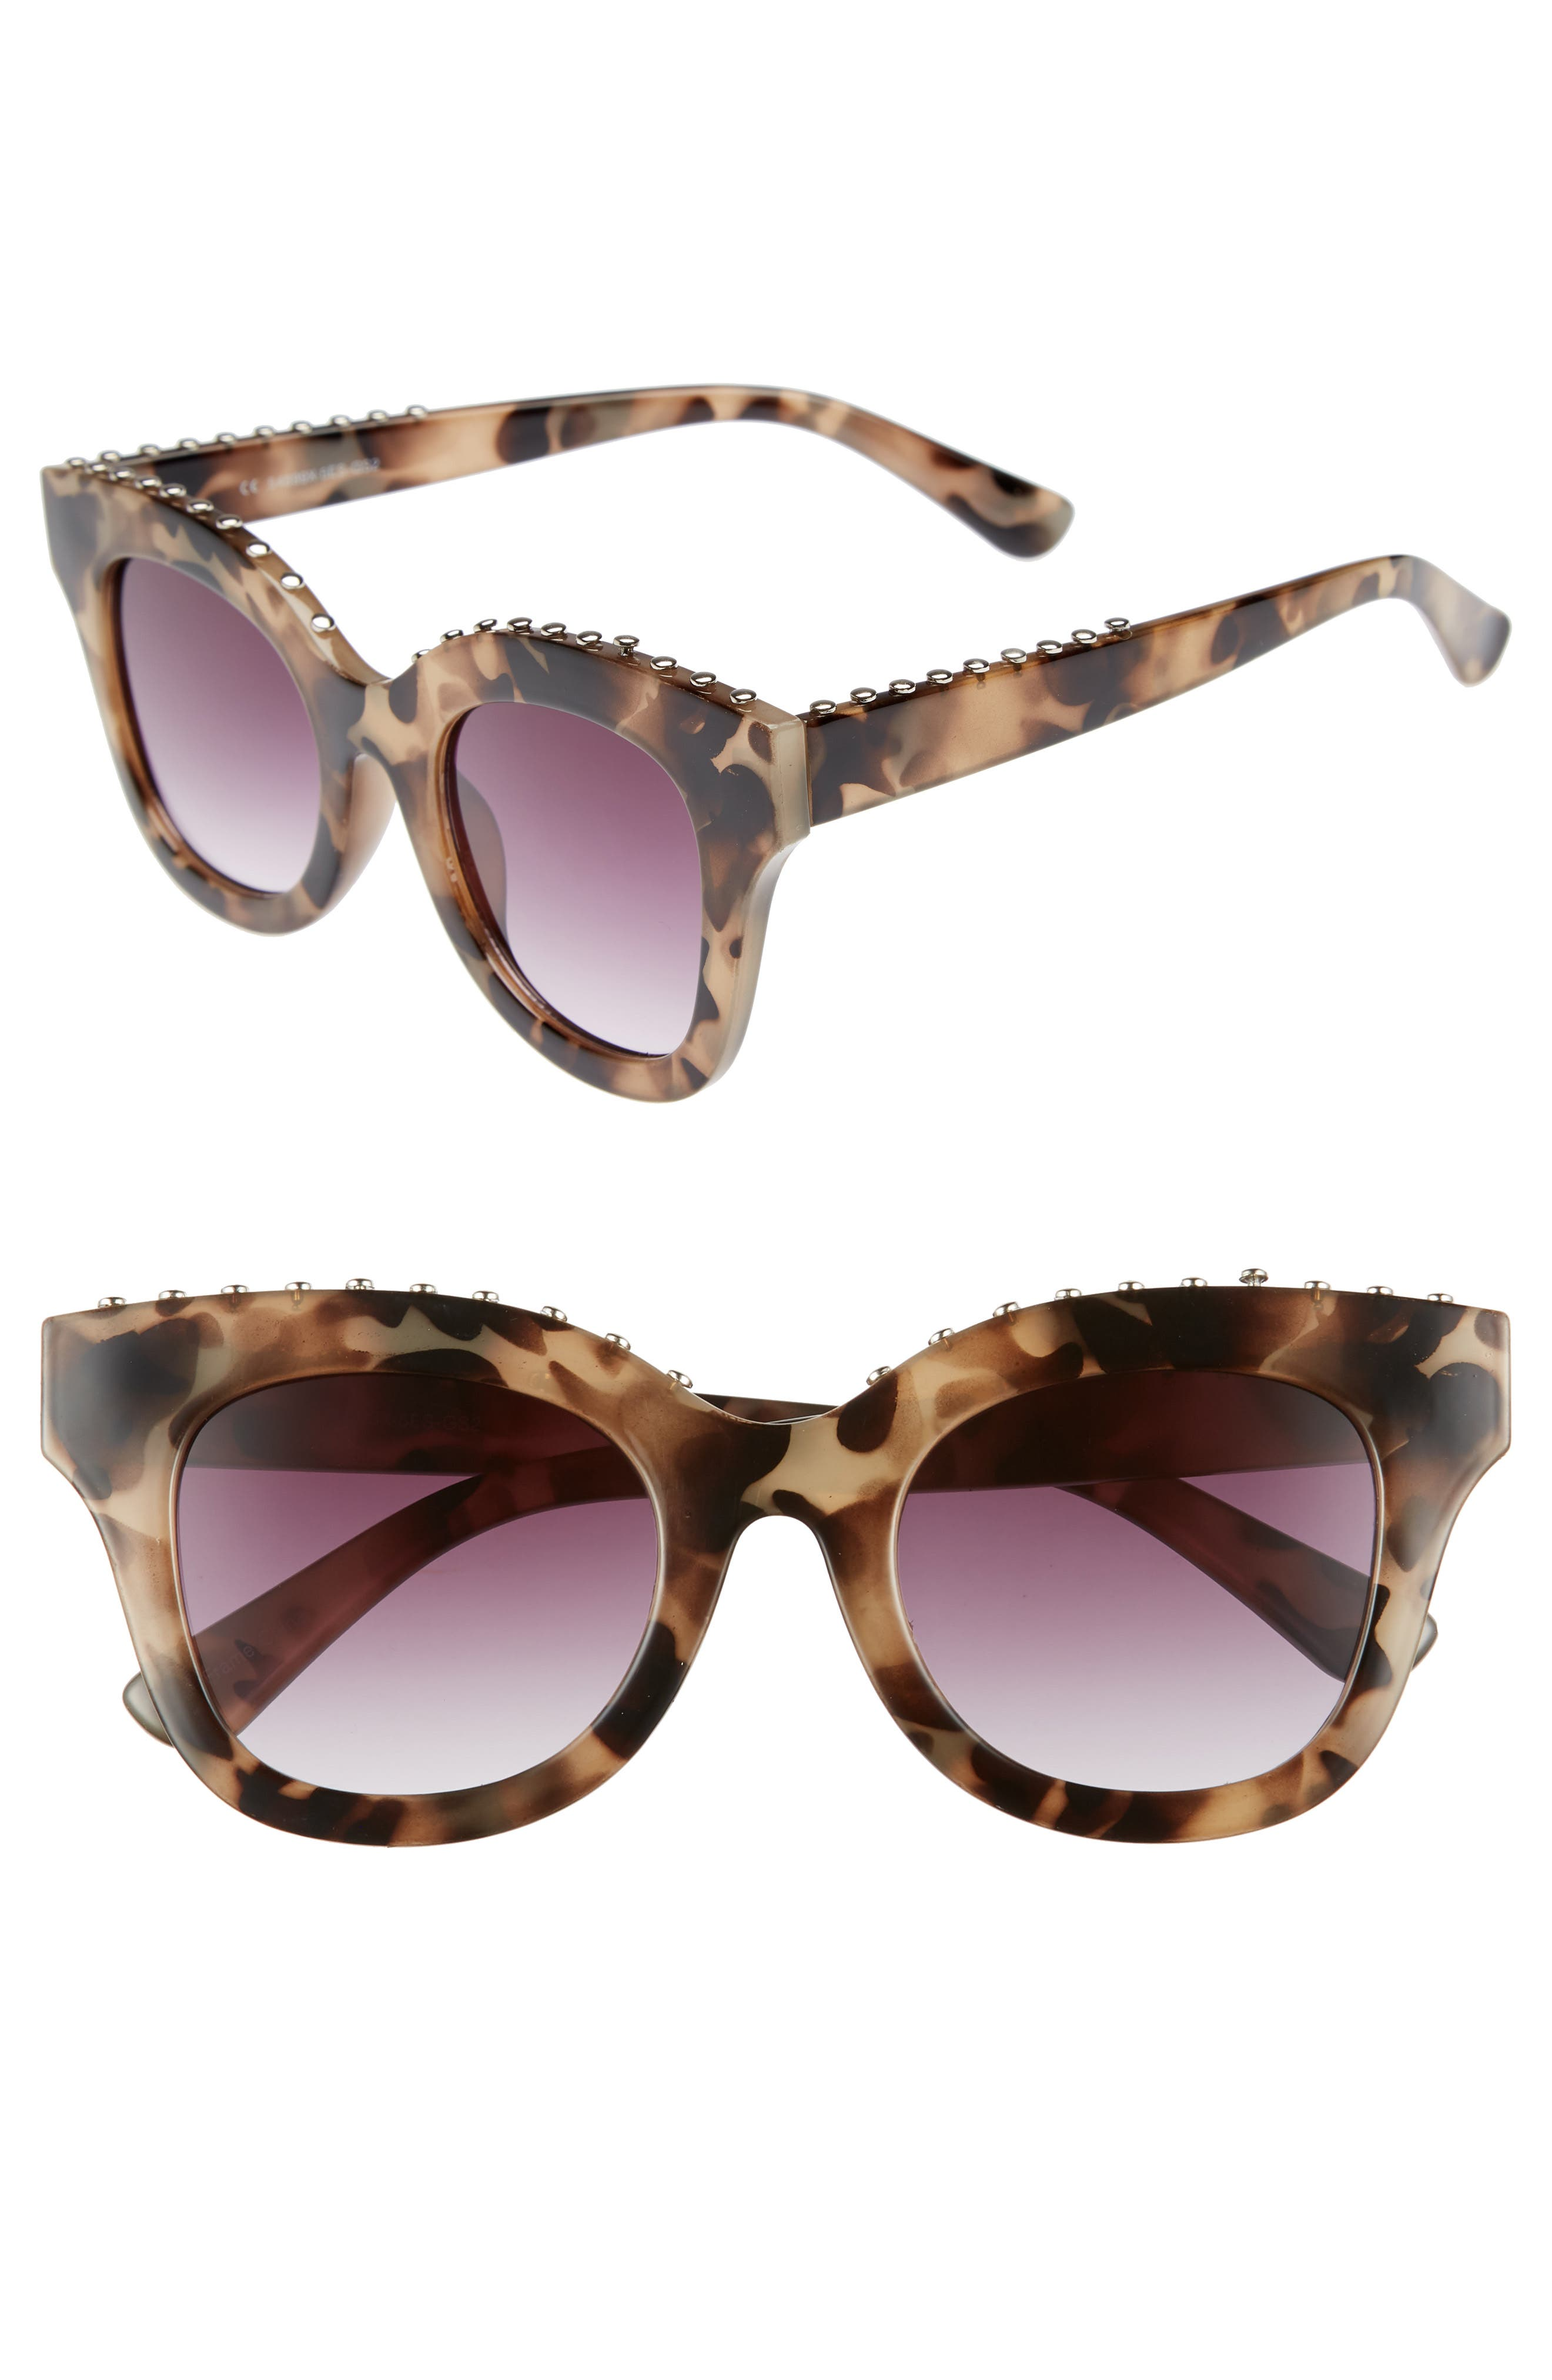 48mm Studded Sunglasses,                             Main thumbnail 1, color,                             Tort/ Silver